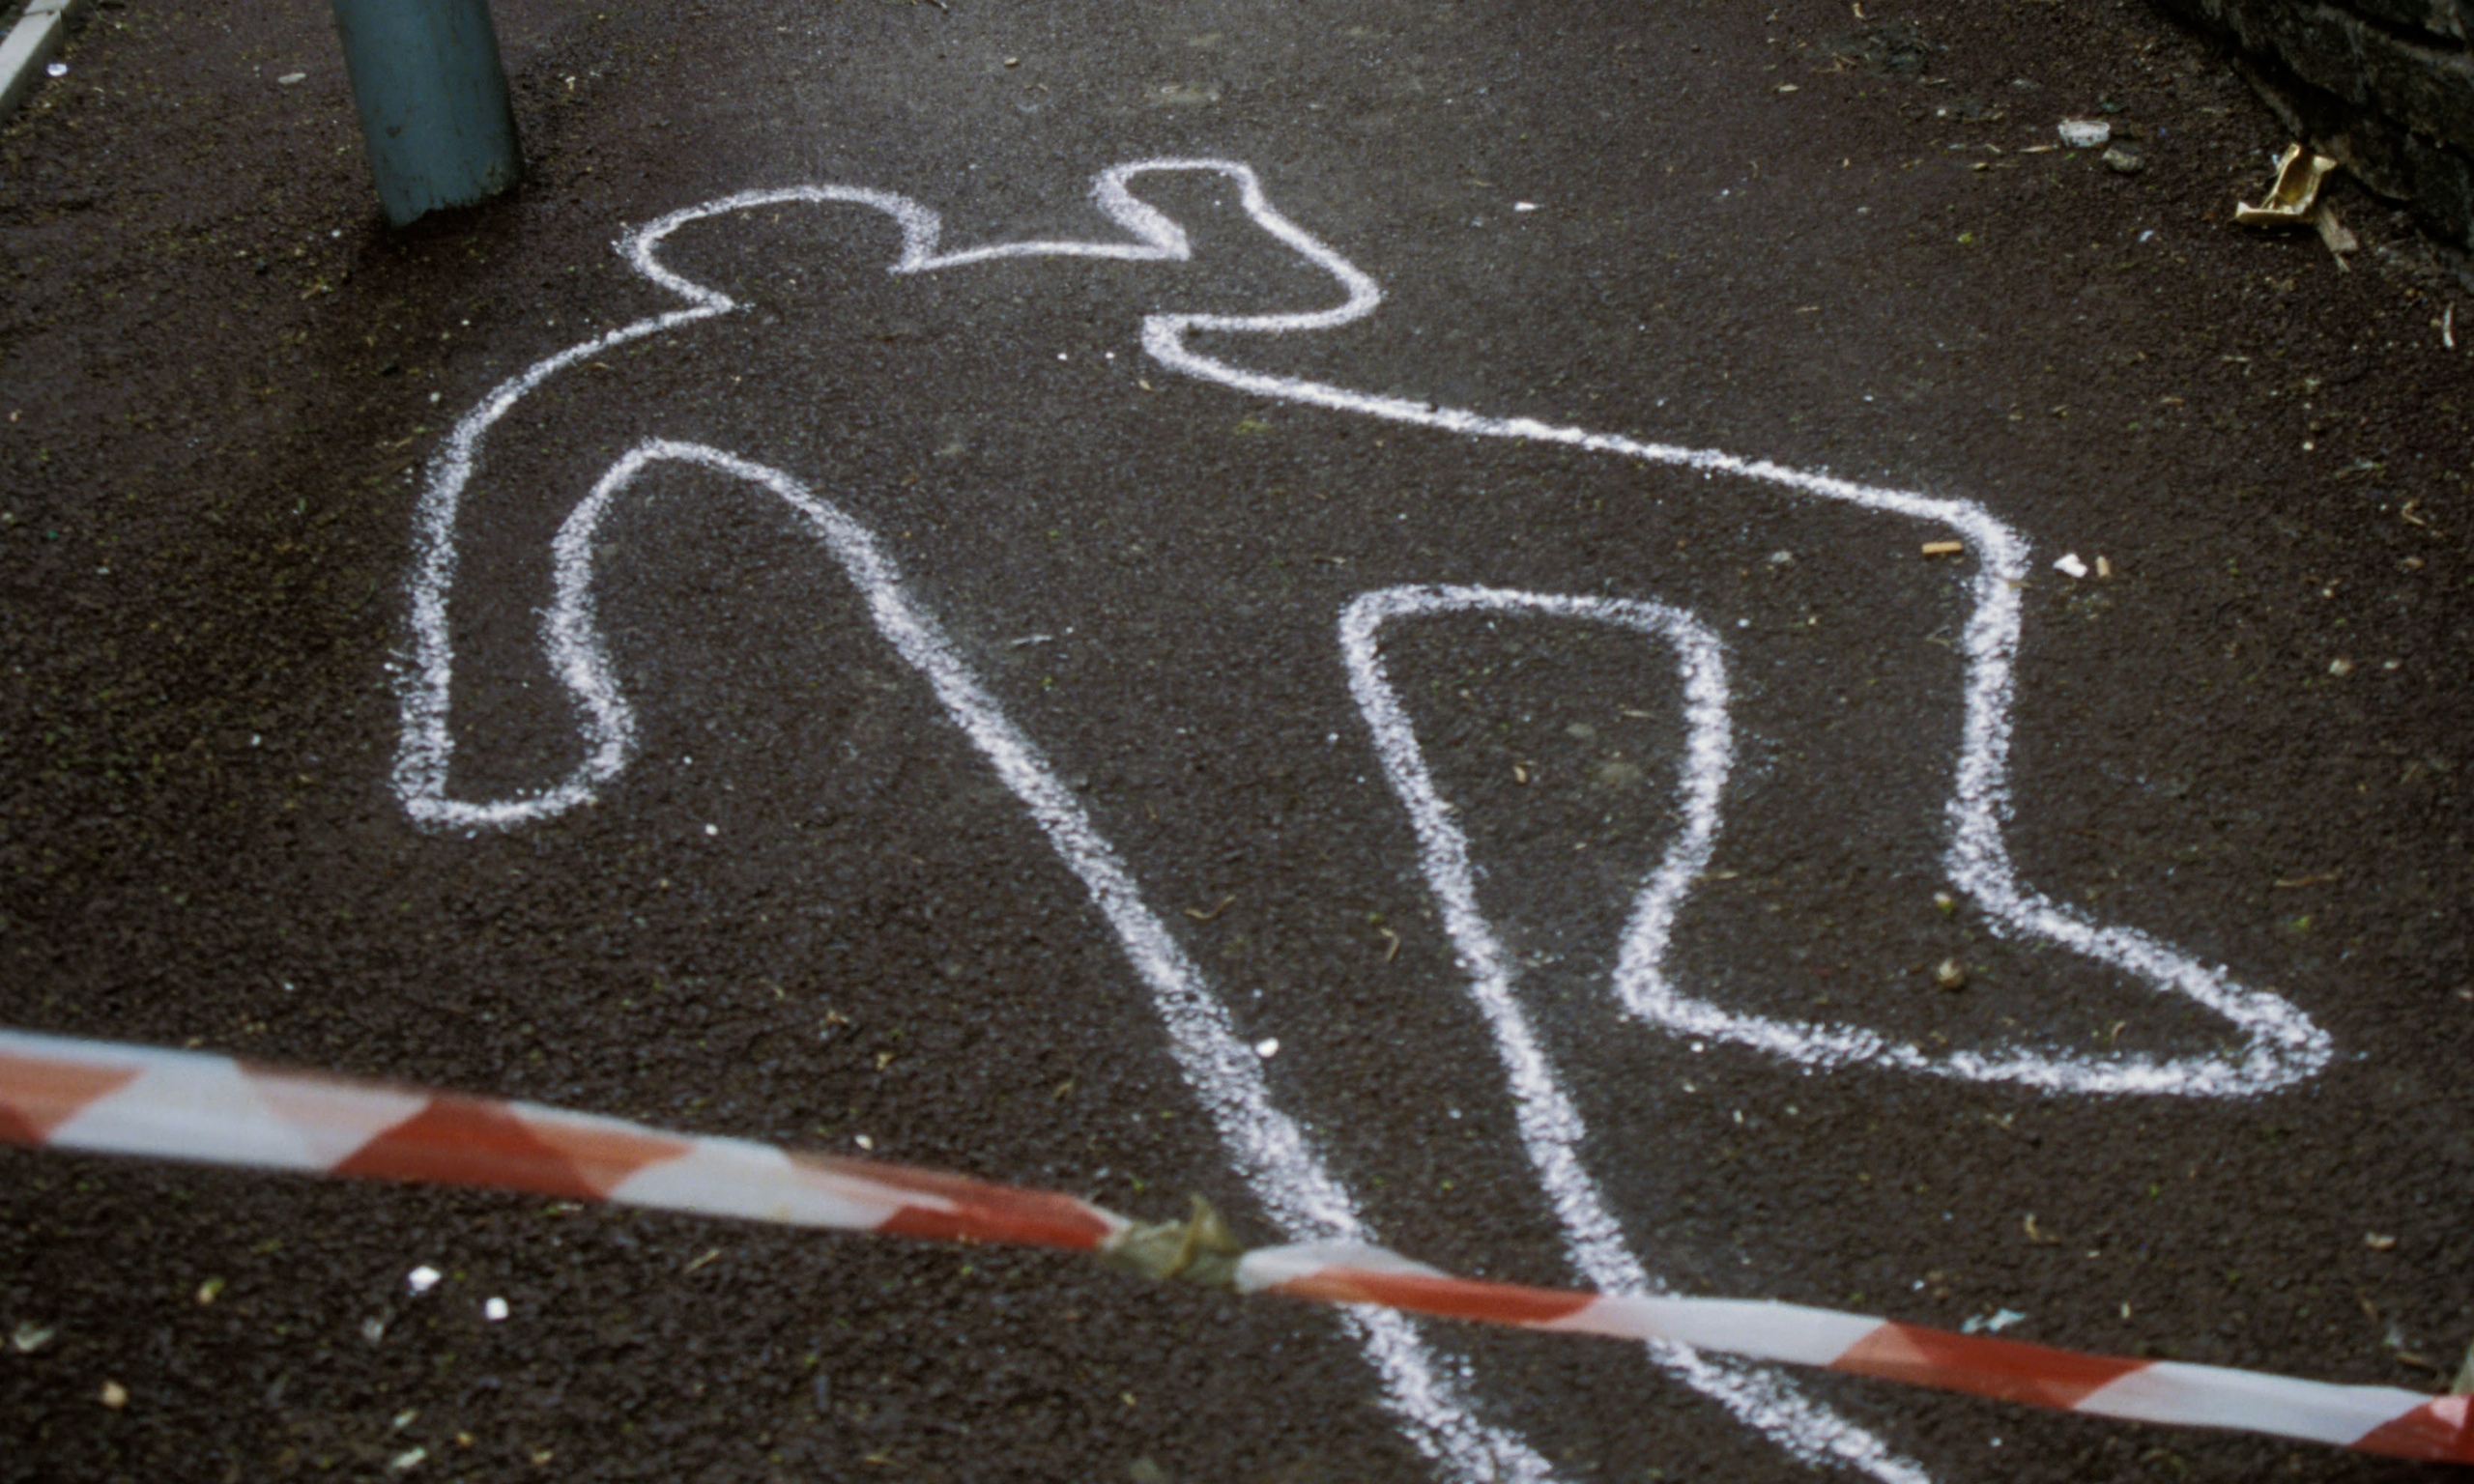 Chalk Outline Crime Scene